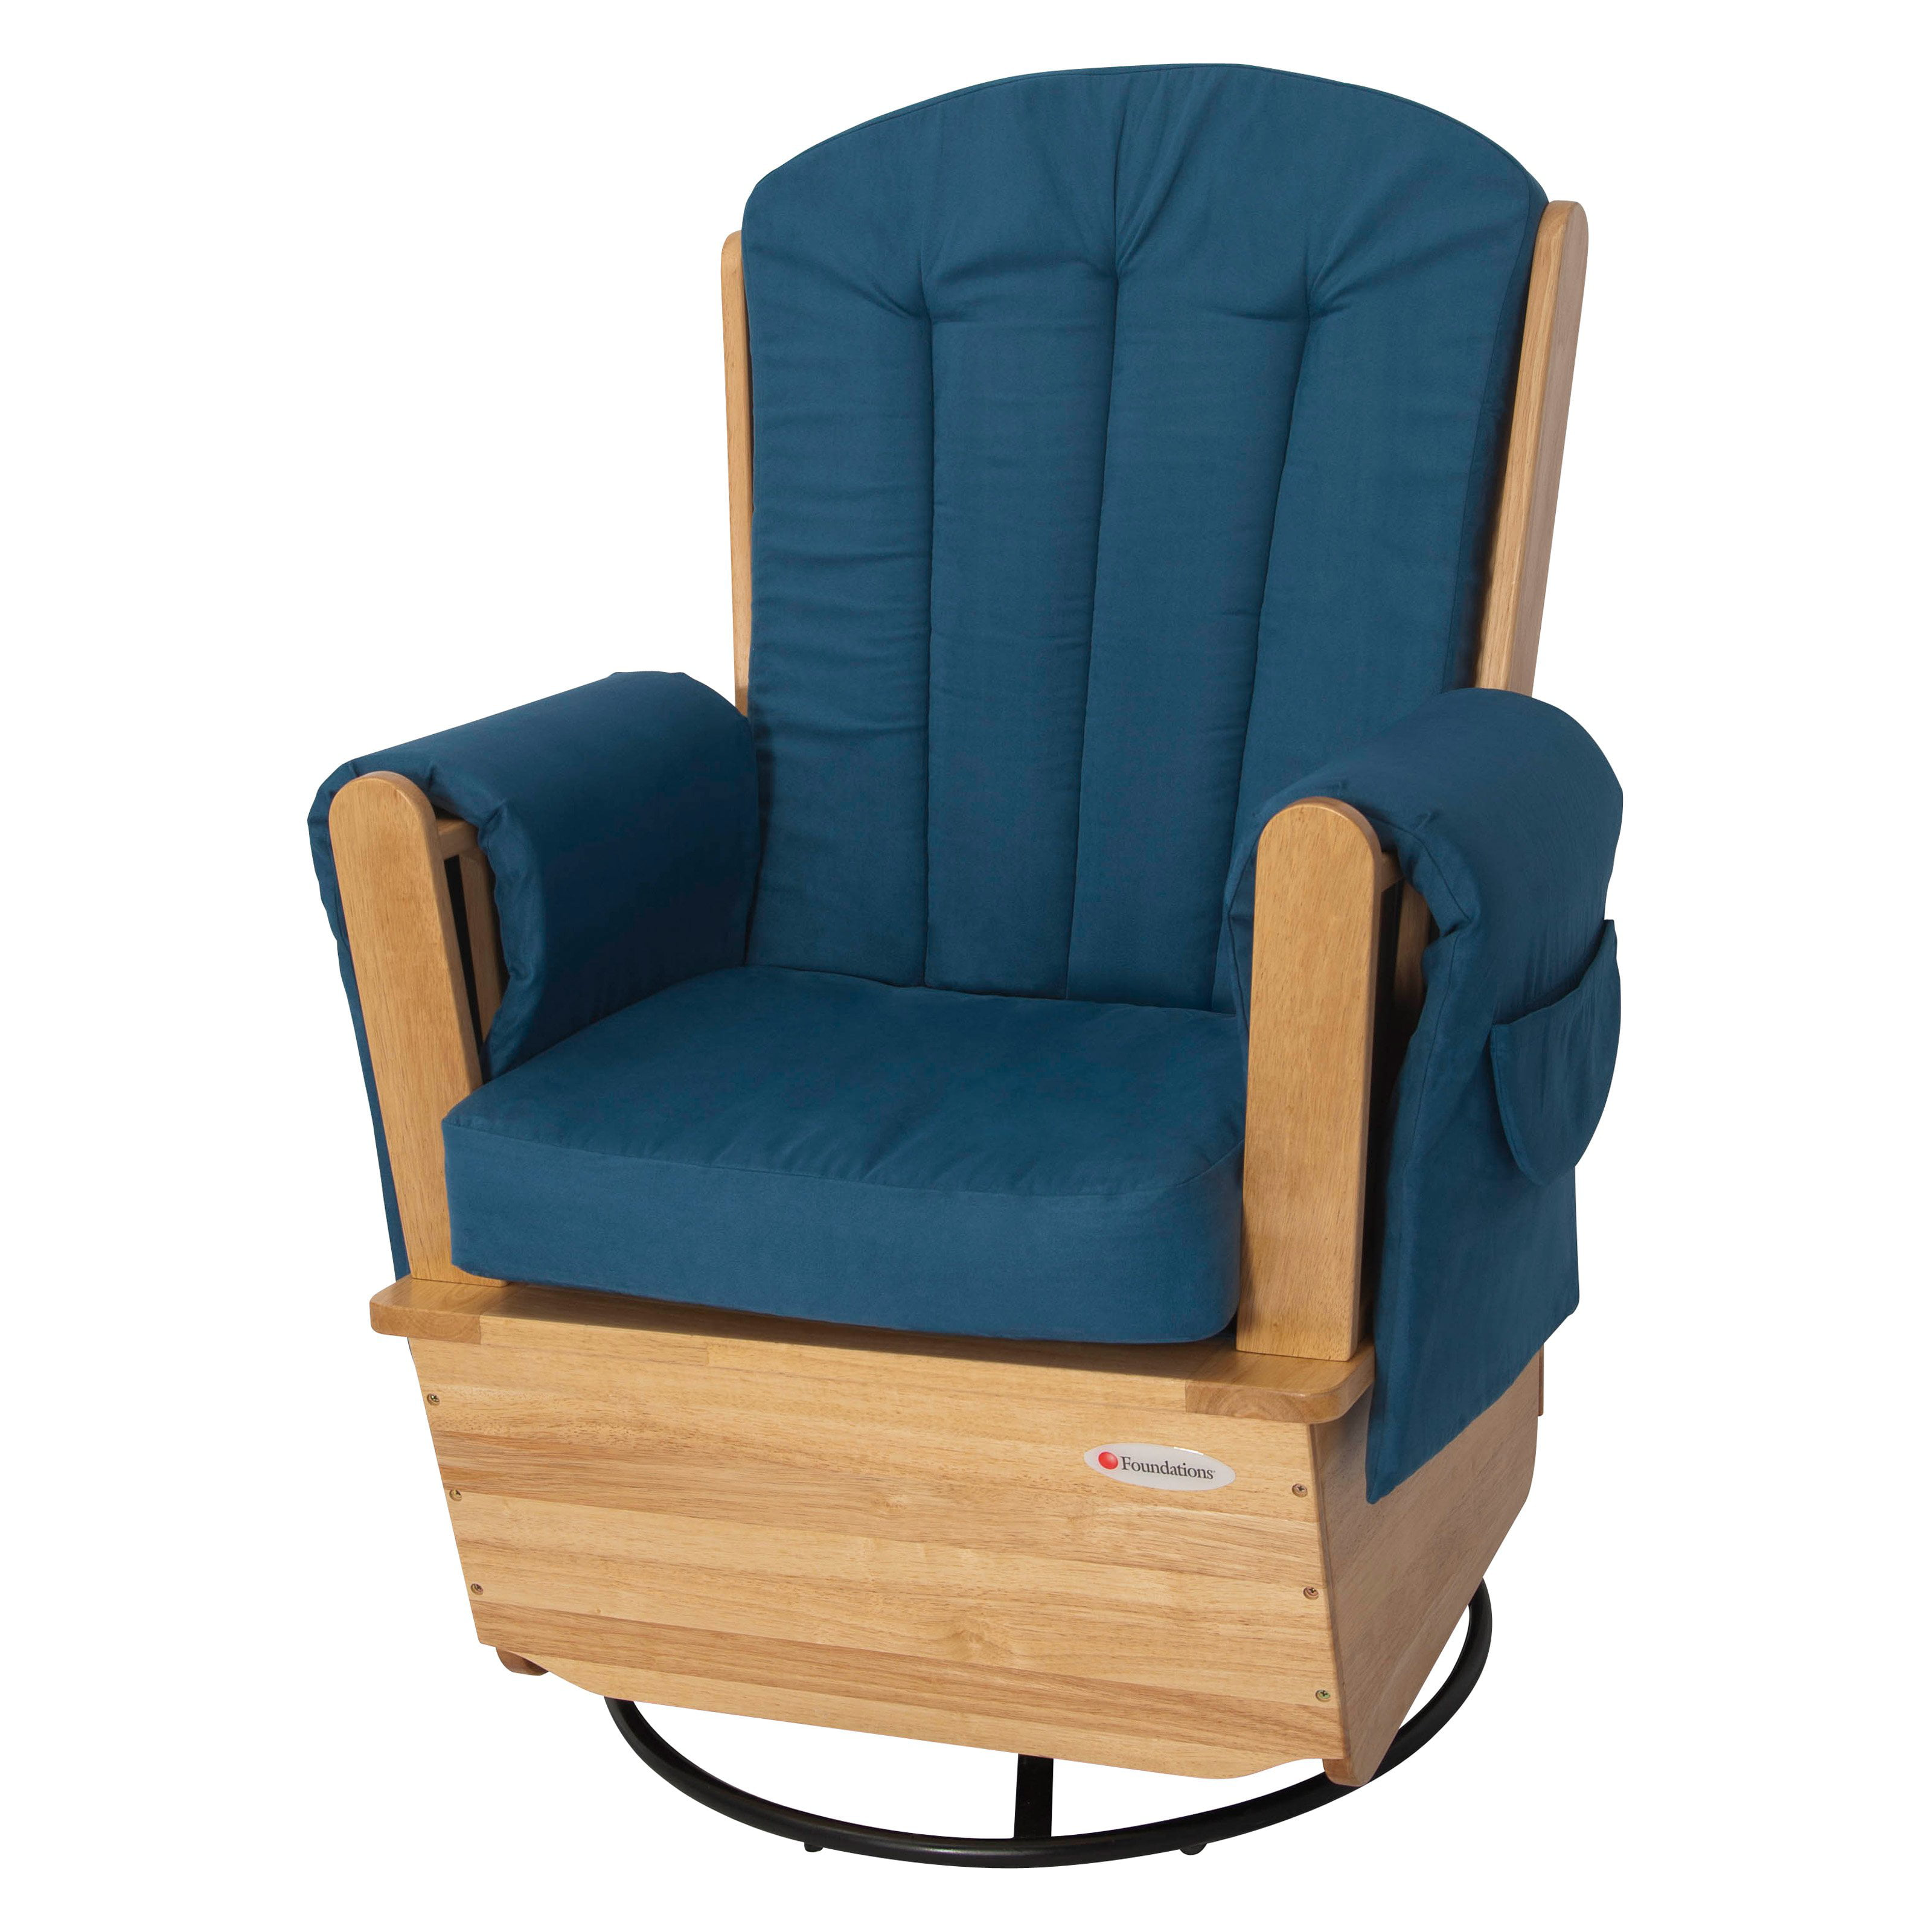 Foundations SafeRocker SS Swivel Glider Rocker Natural Blue by Foundations